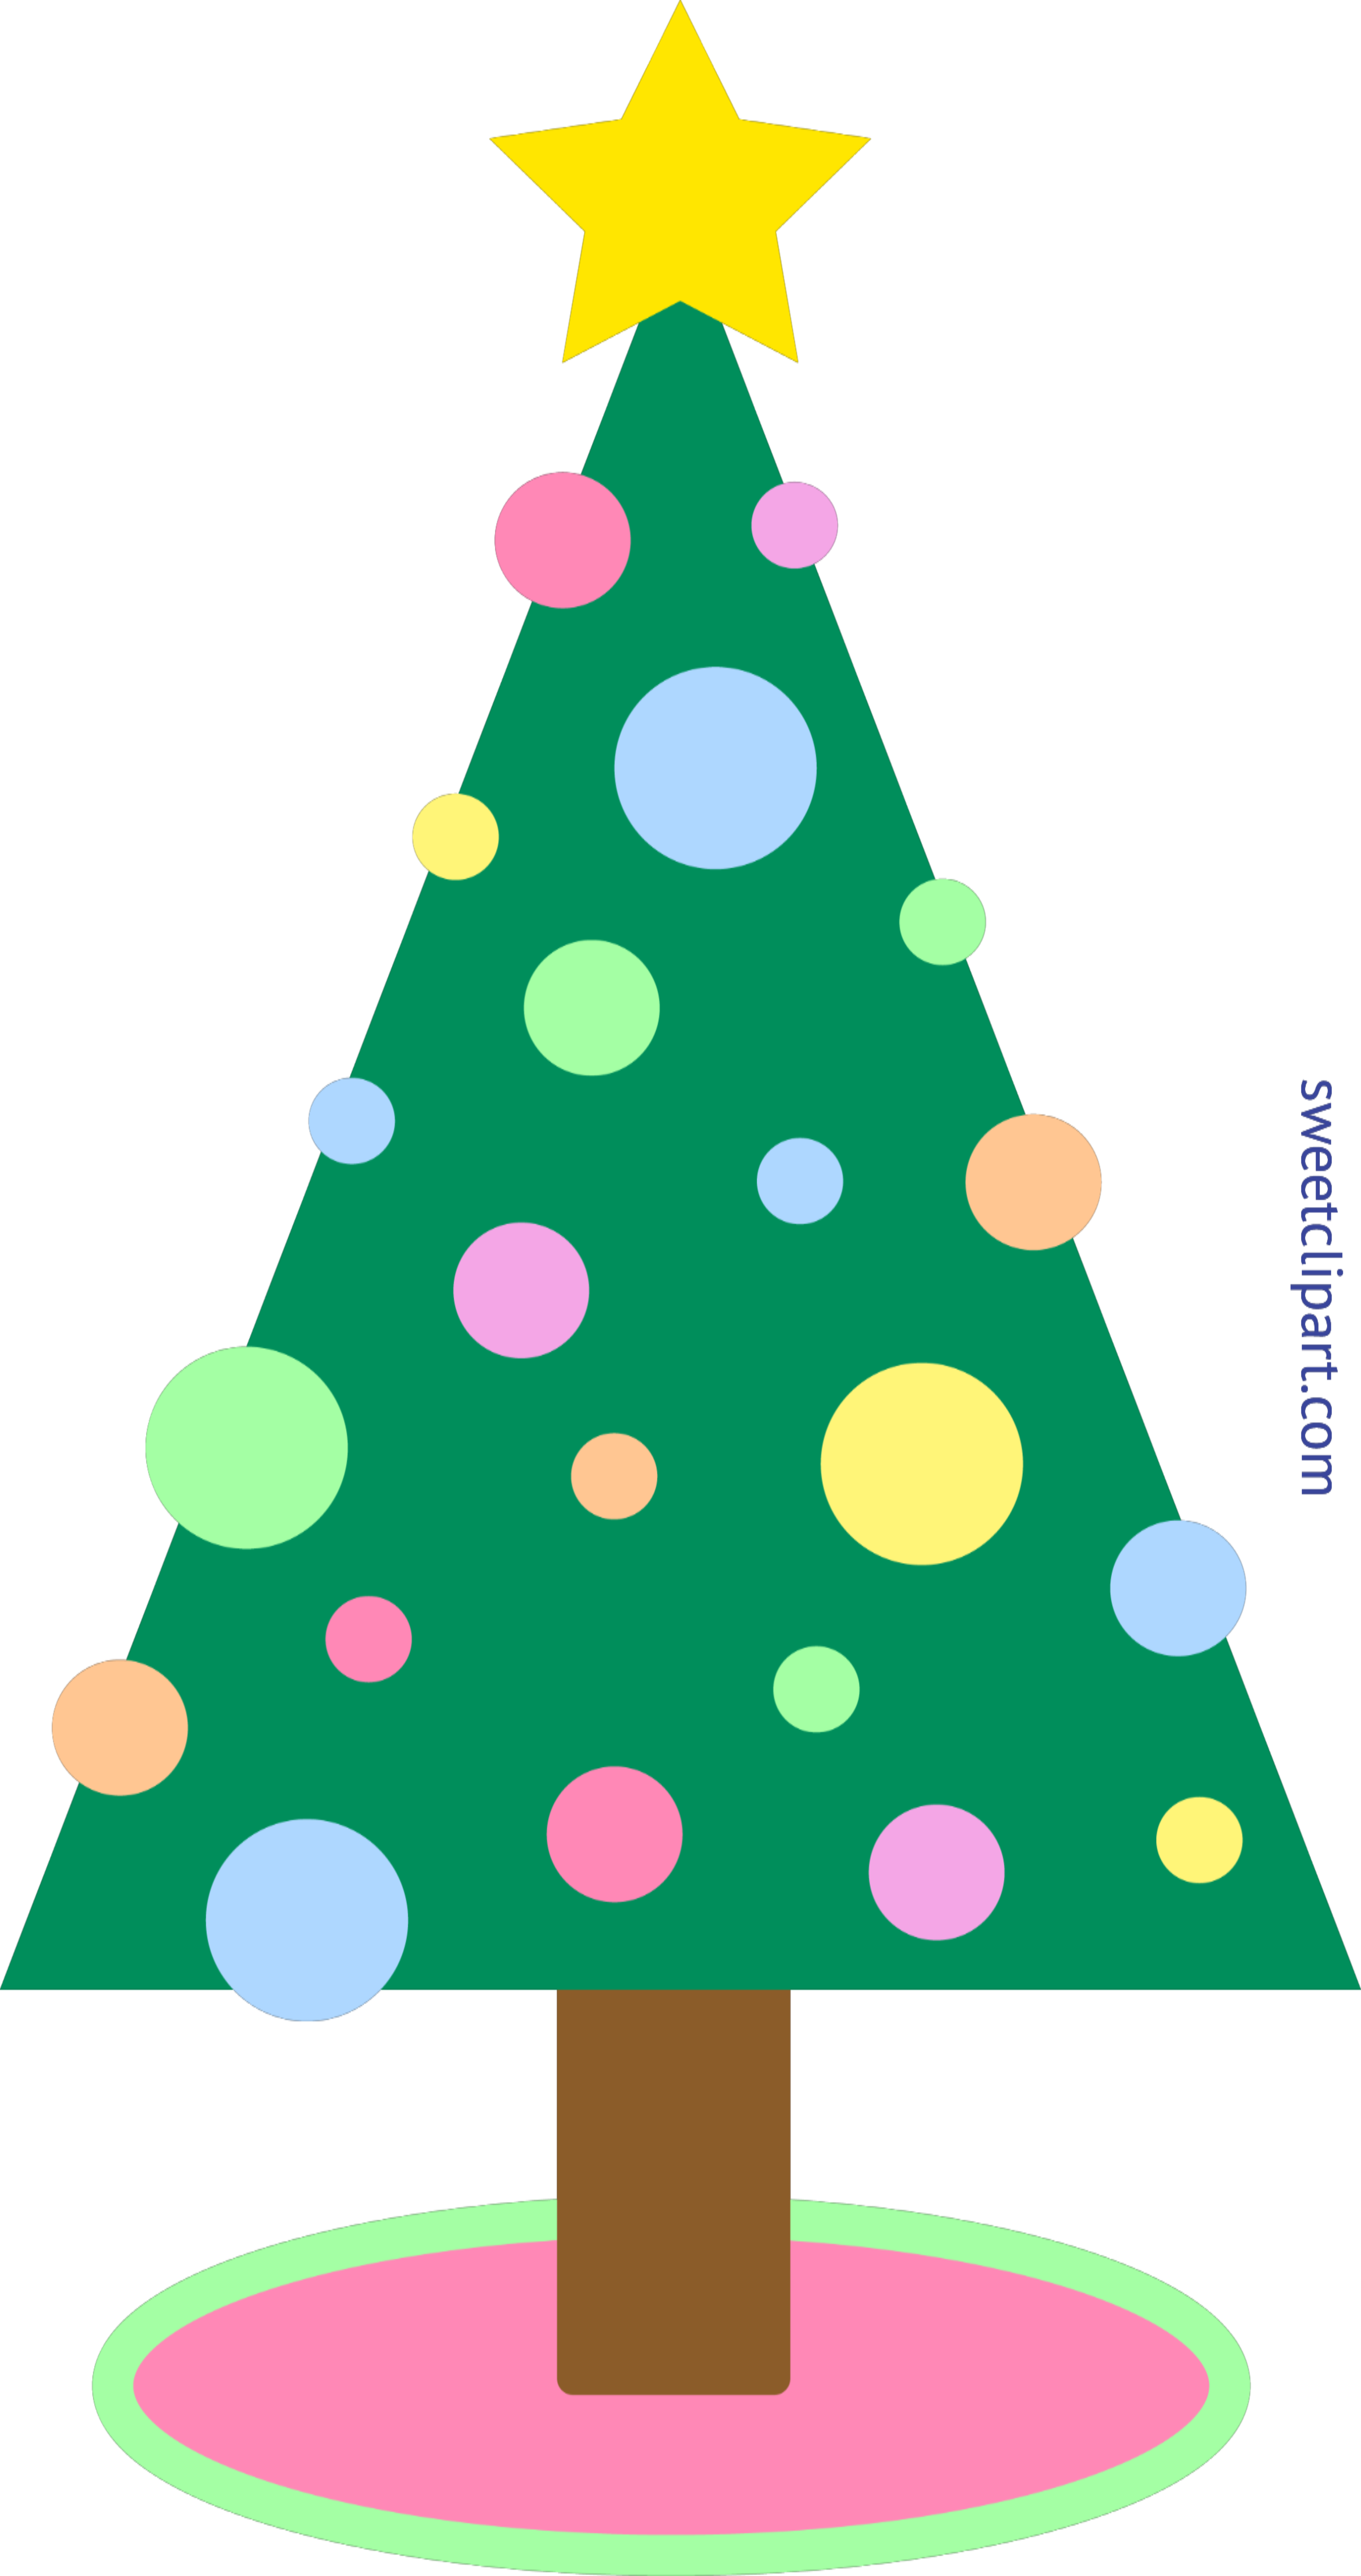 Clipart Christmas Tree.Christmas Tree Pastel Clip Art Sweet Clip Art